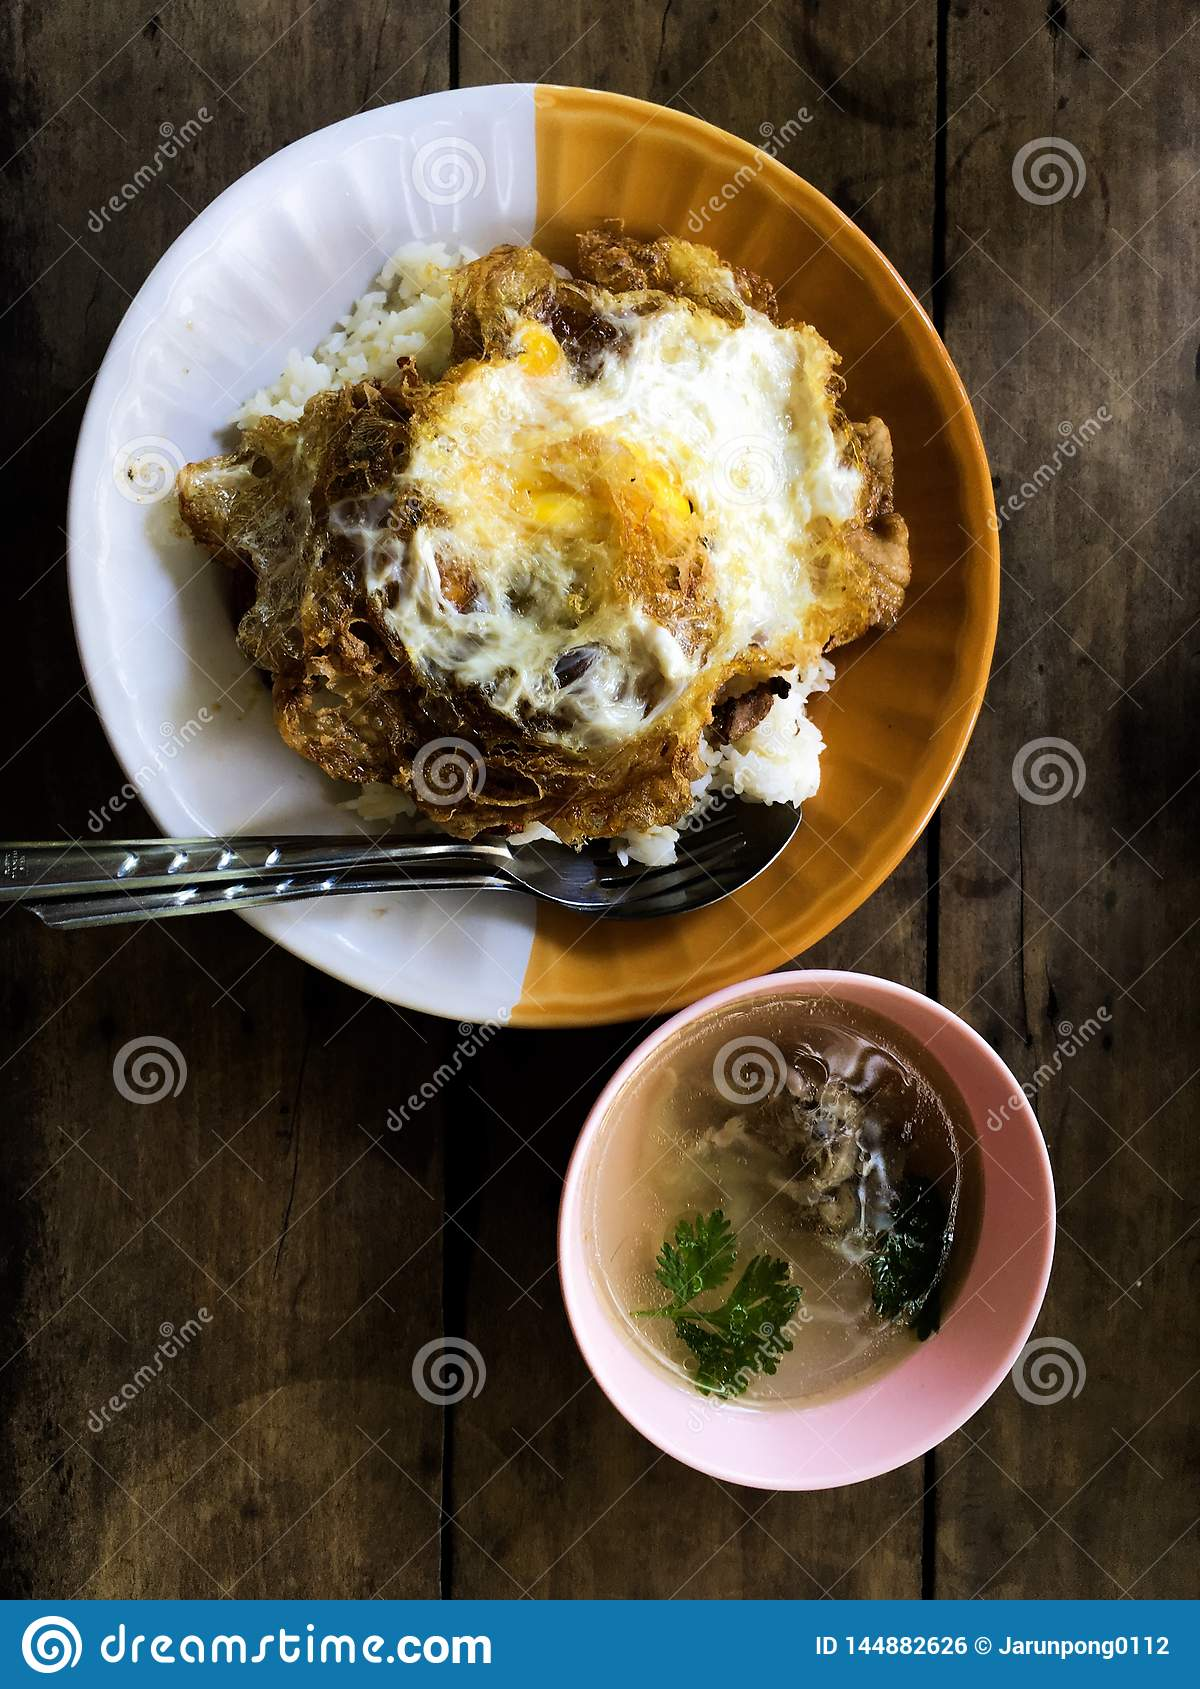 Fried rice and fired egg. Popular thai food.